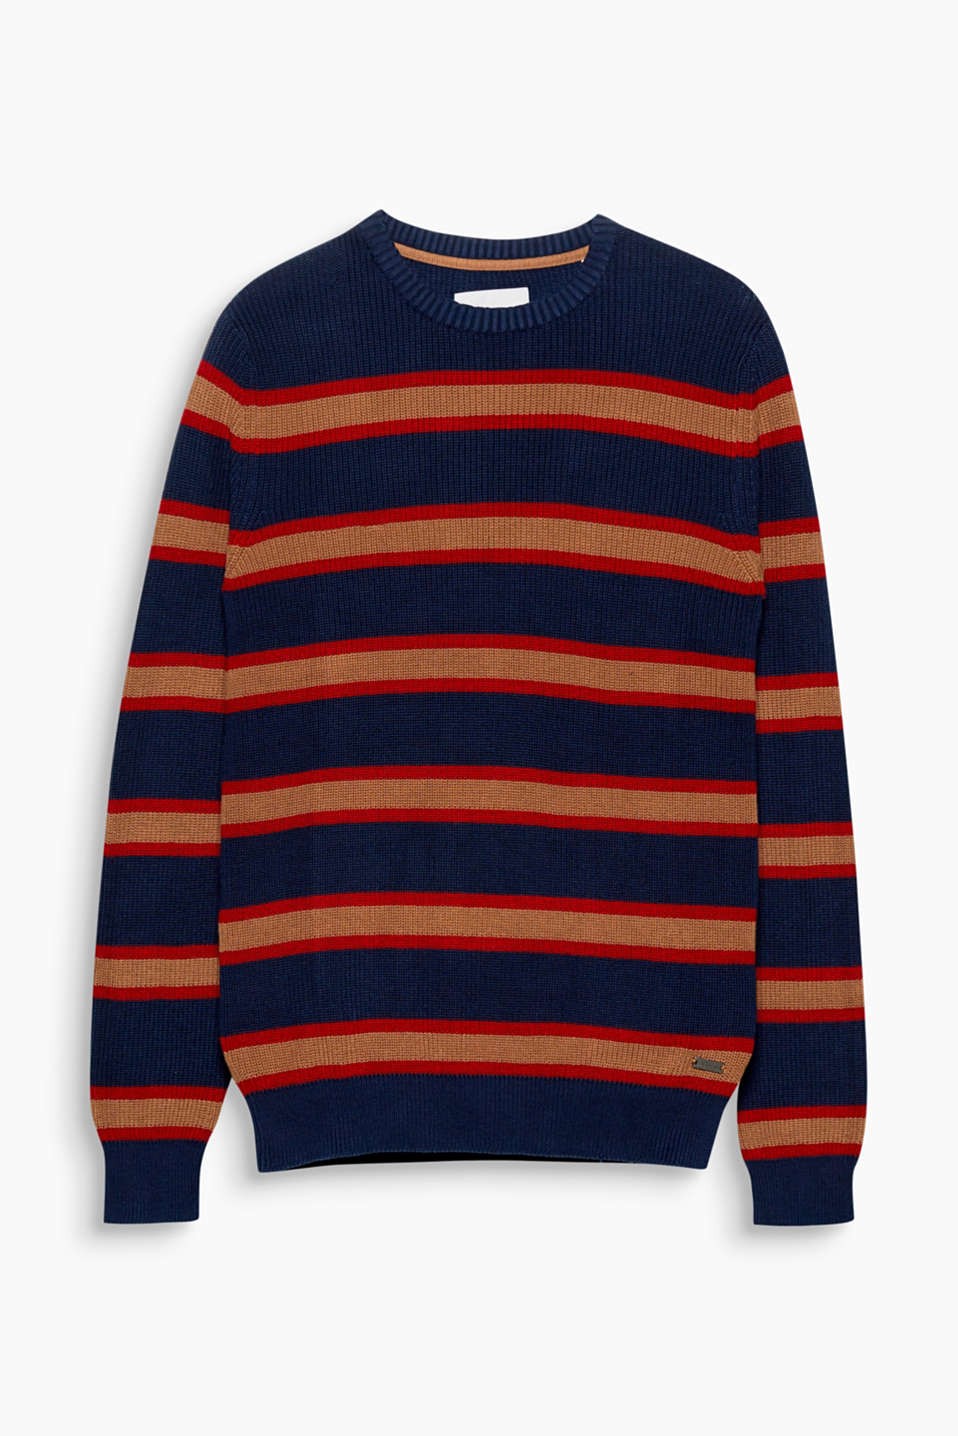 We love knitwear! And the retro stripes stylishly round off the urban design of this jumper.